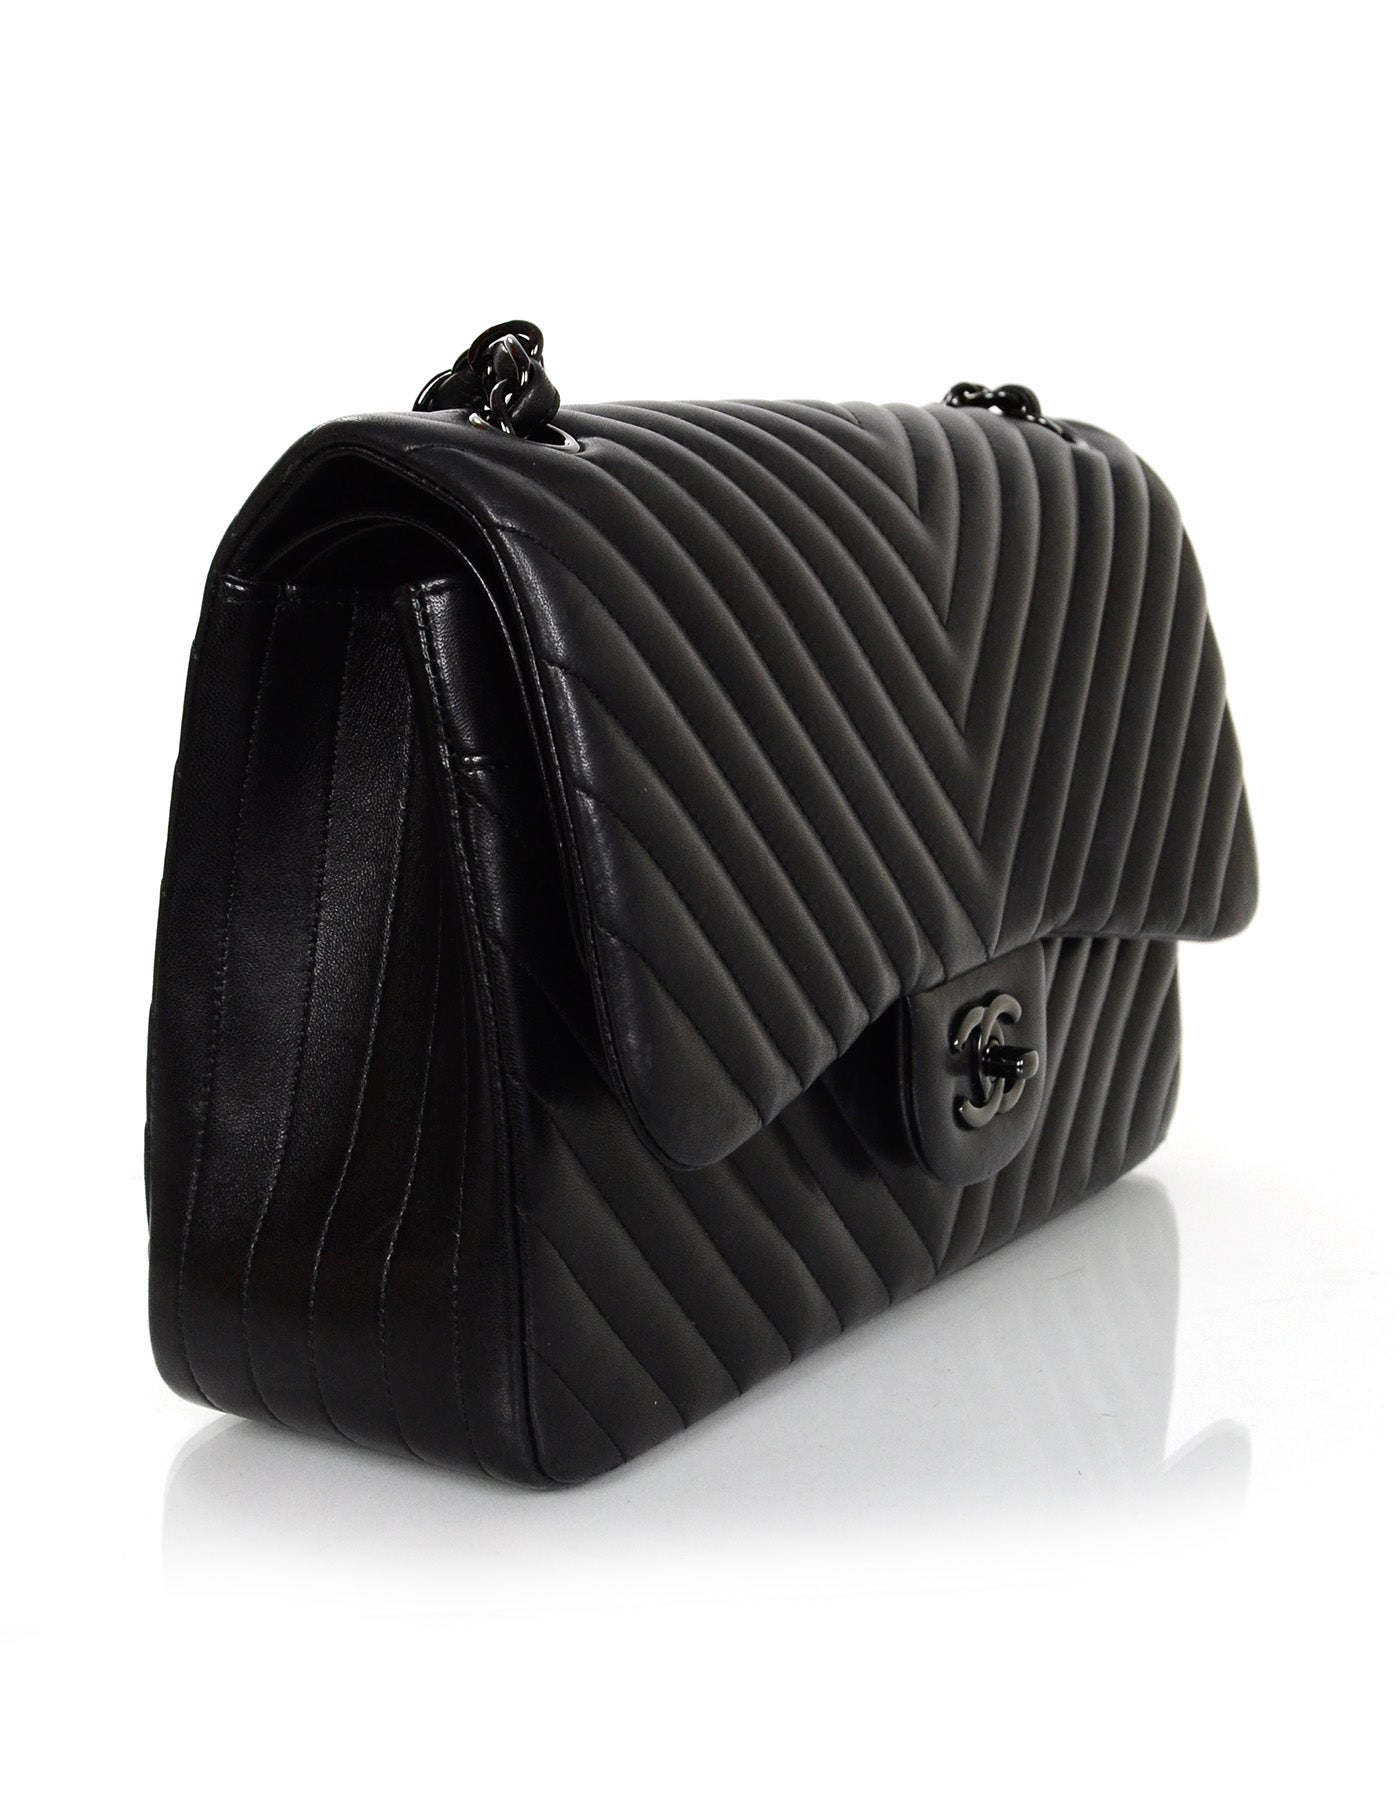 427f6cf6c633 Chanel Rare Collectors Sold Out Chevron SO Black Double Flap Jumbo Classic  Bag at 1stdibs